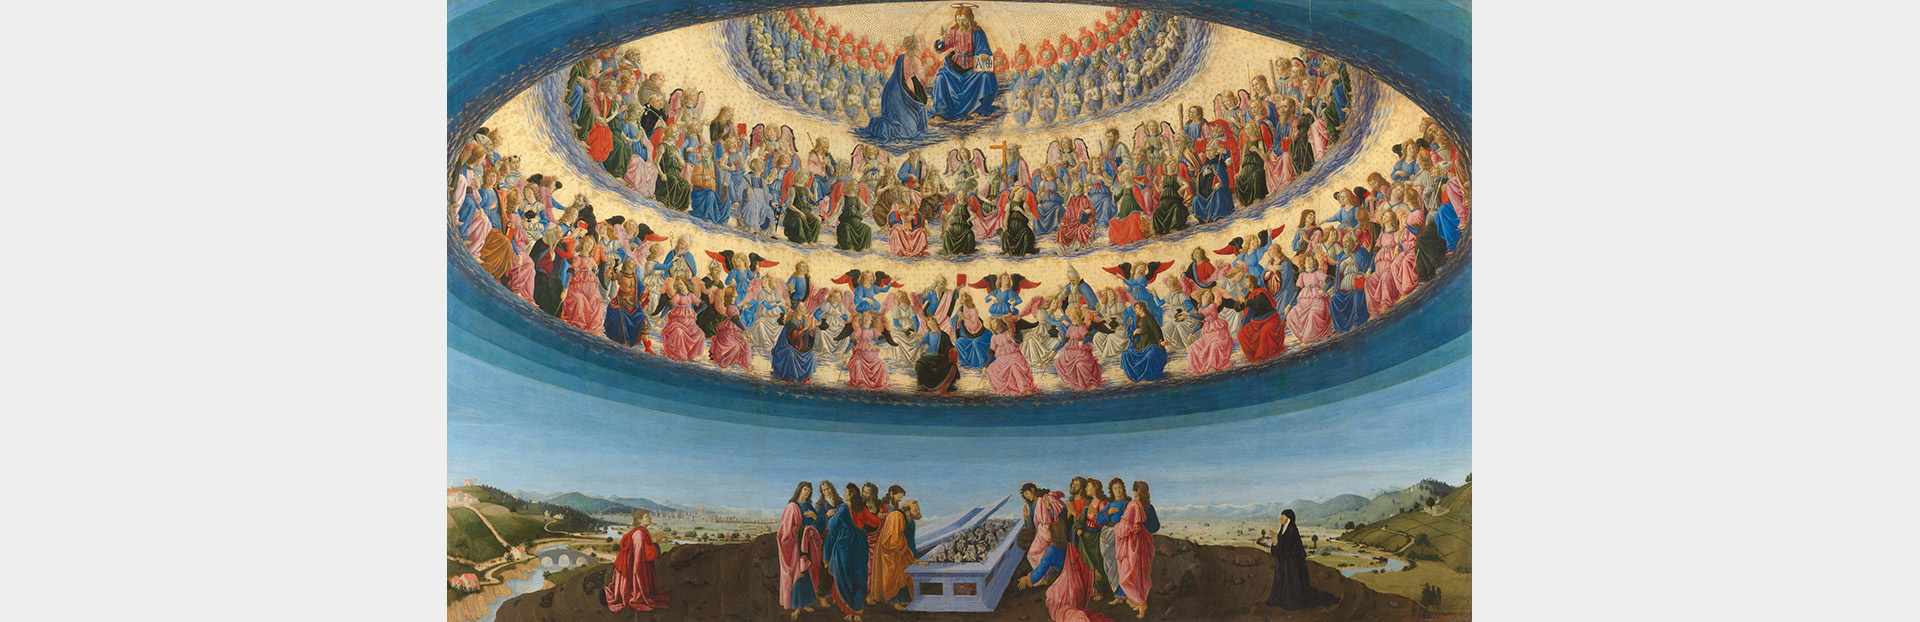 Reflections on the Assumption